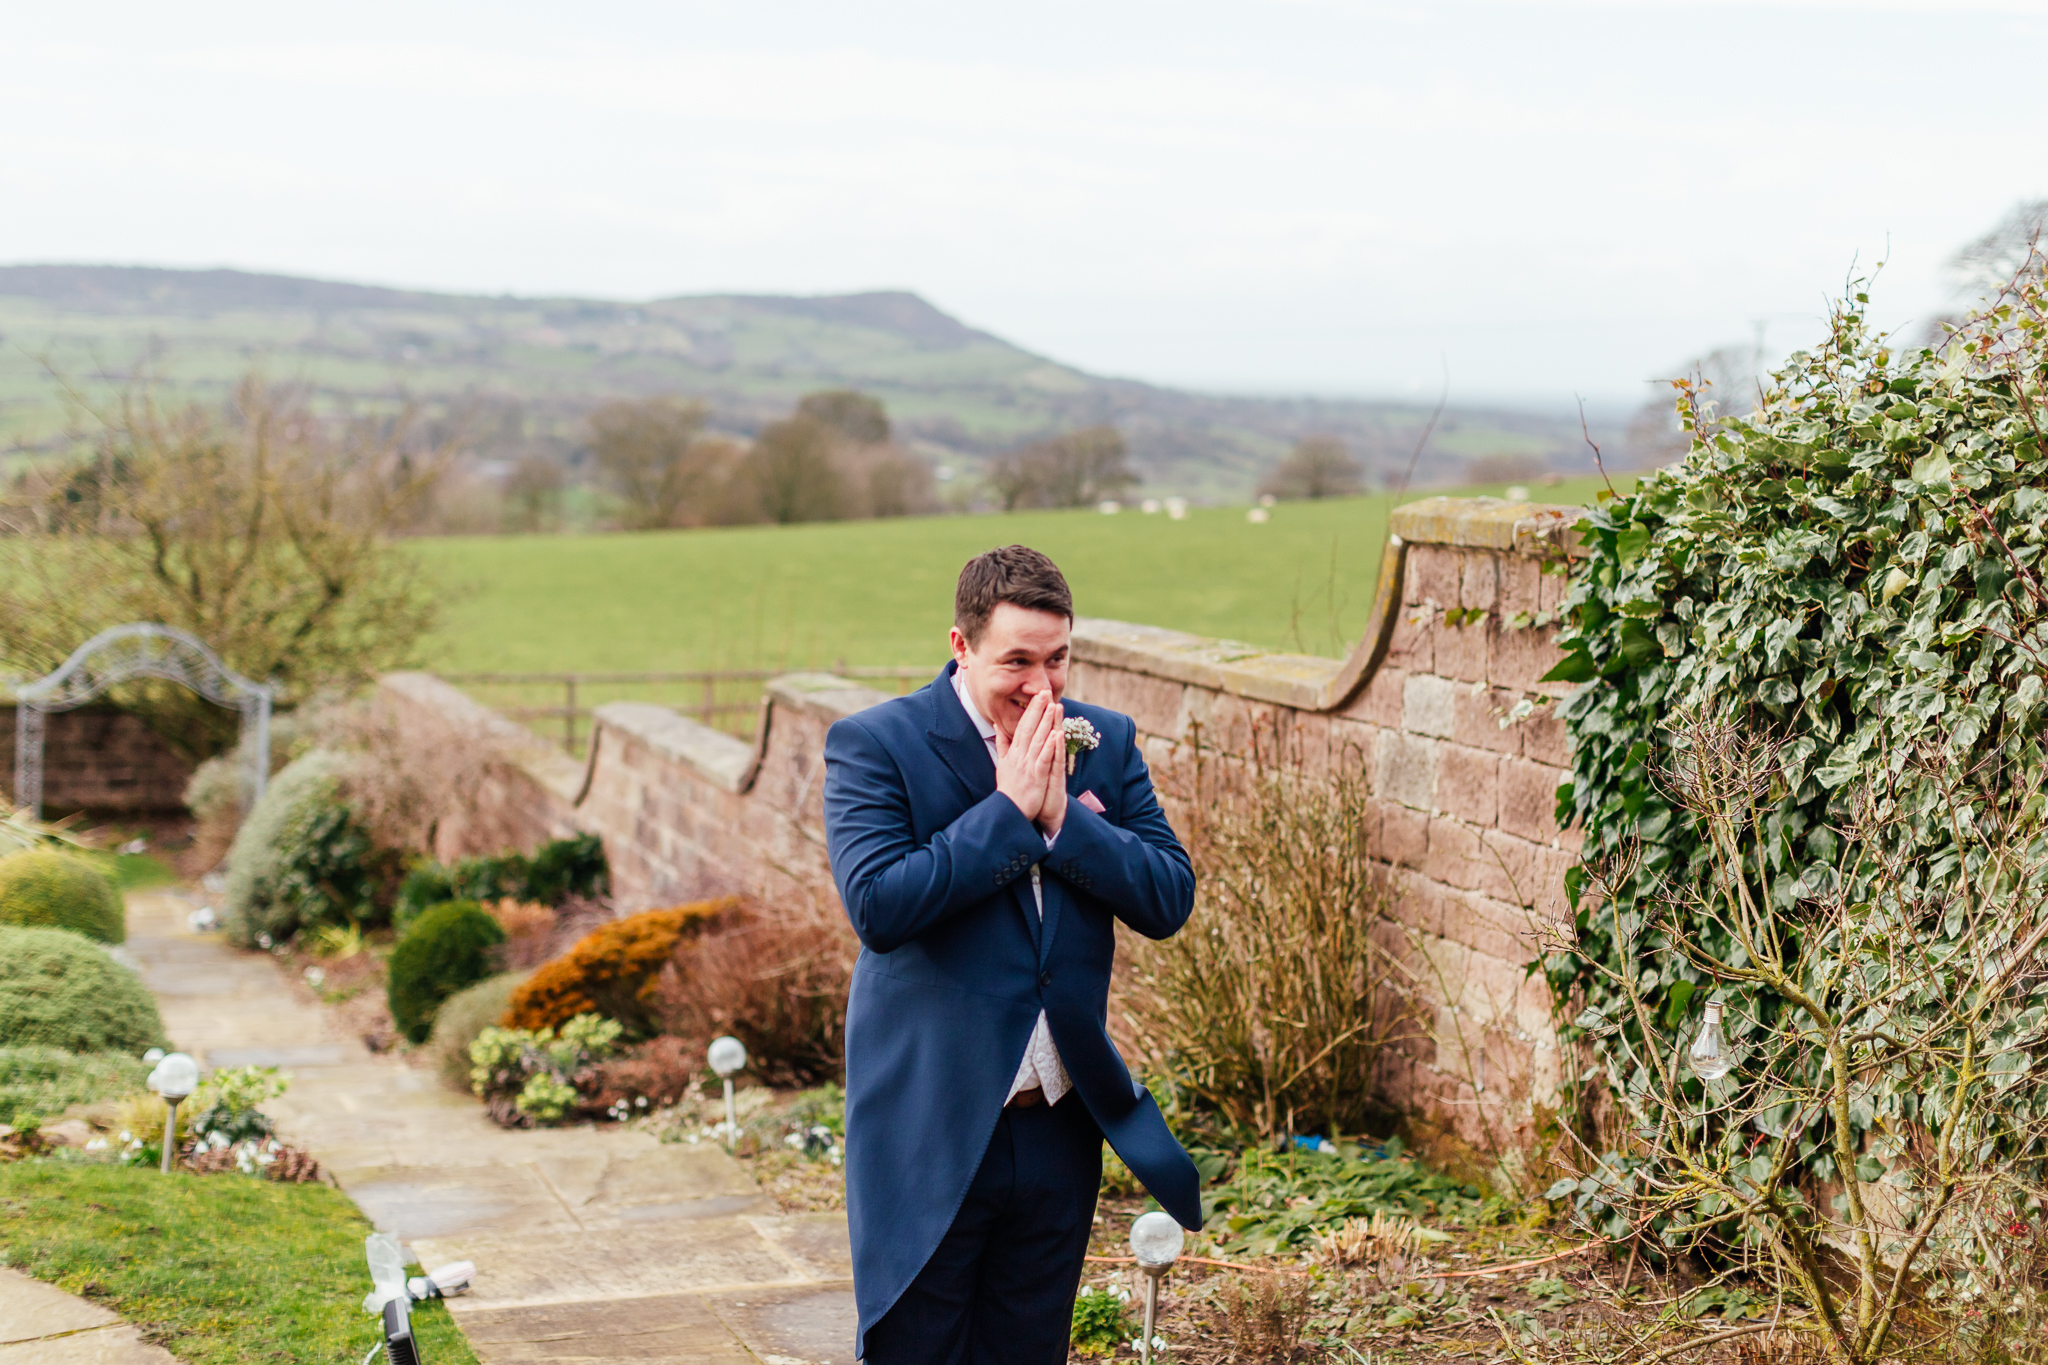 Heaton-House-Farm-Cheshire-Wedding-13.jpg